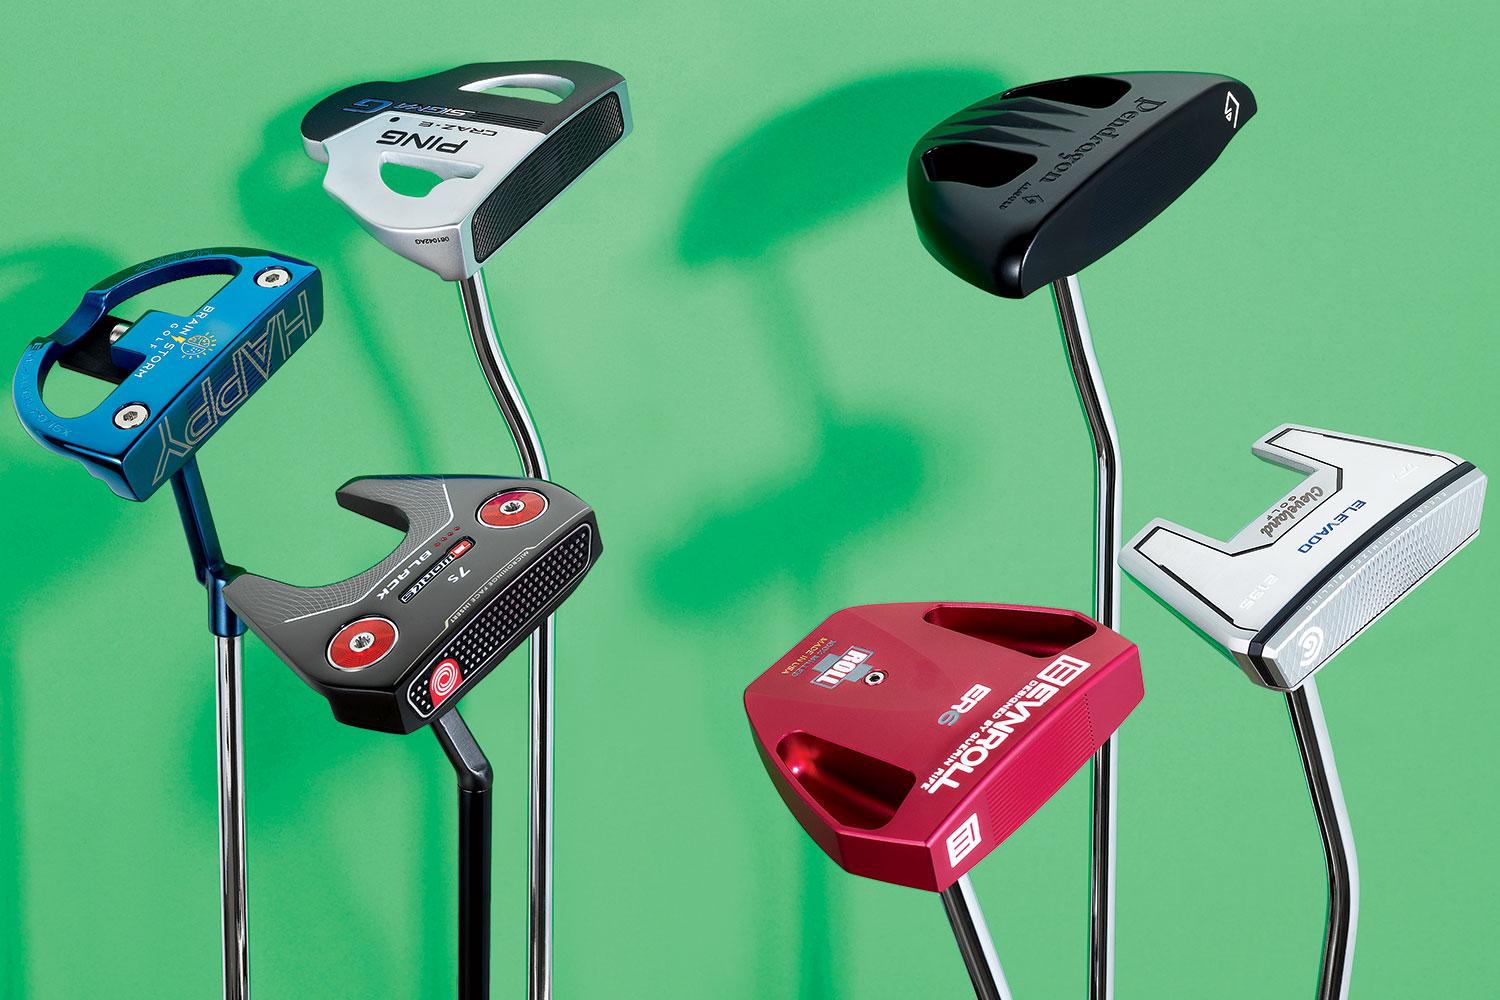 Mallet Putters